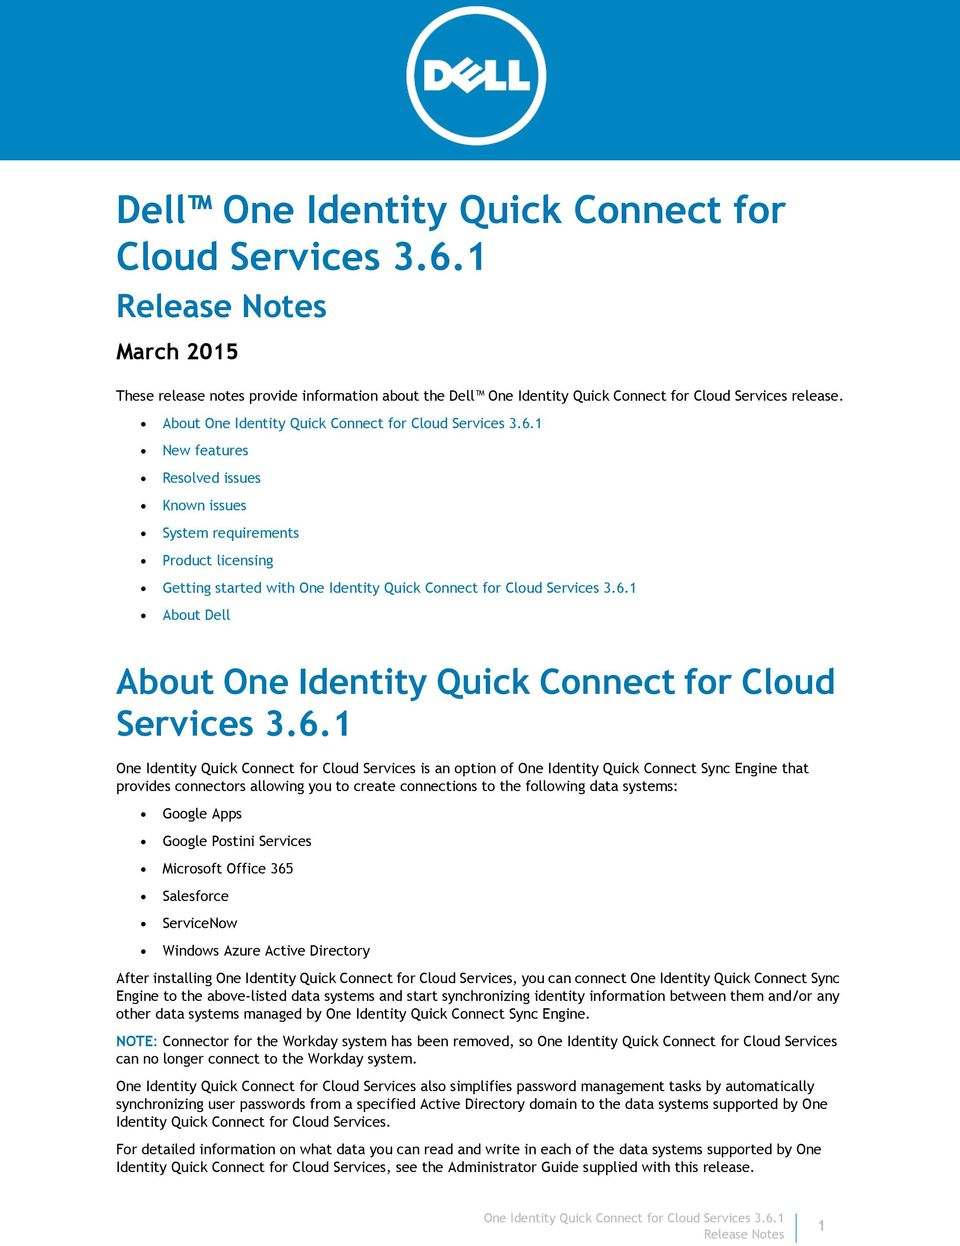 1 One Identity Quick Connect for Cloud Services is an option of One Identity Quick Connect Sync Engine that provides connectors allowing you to create connections to the following data systems: